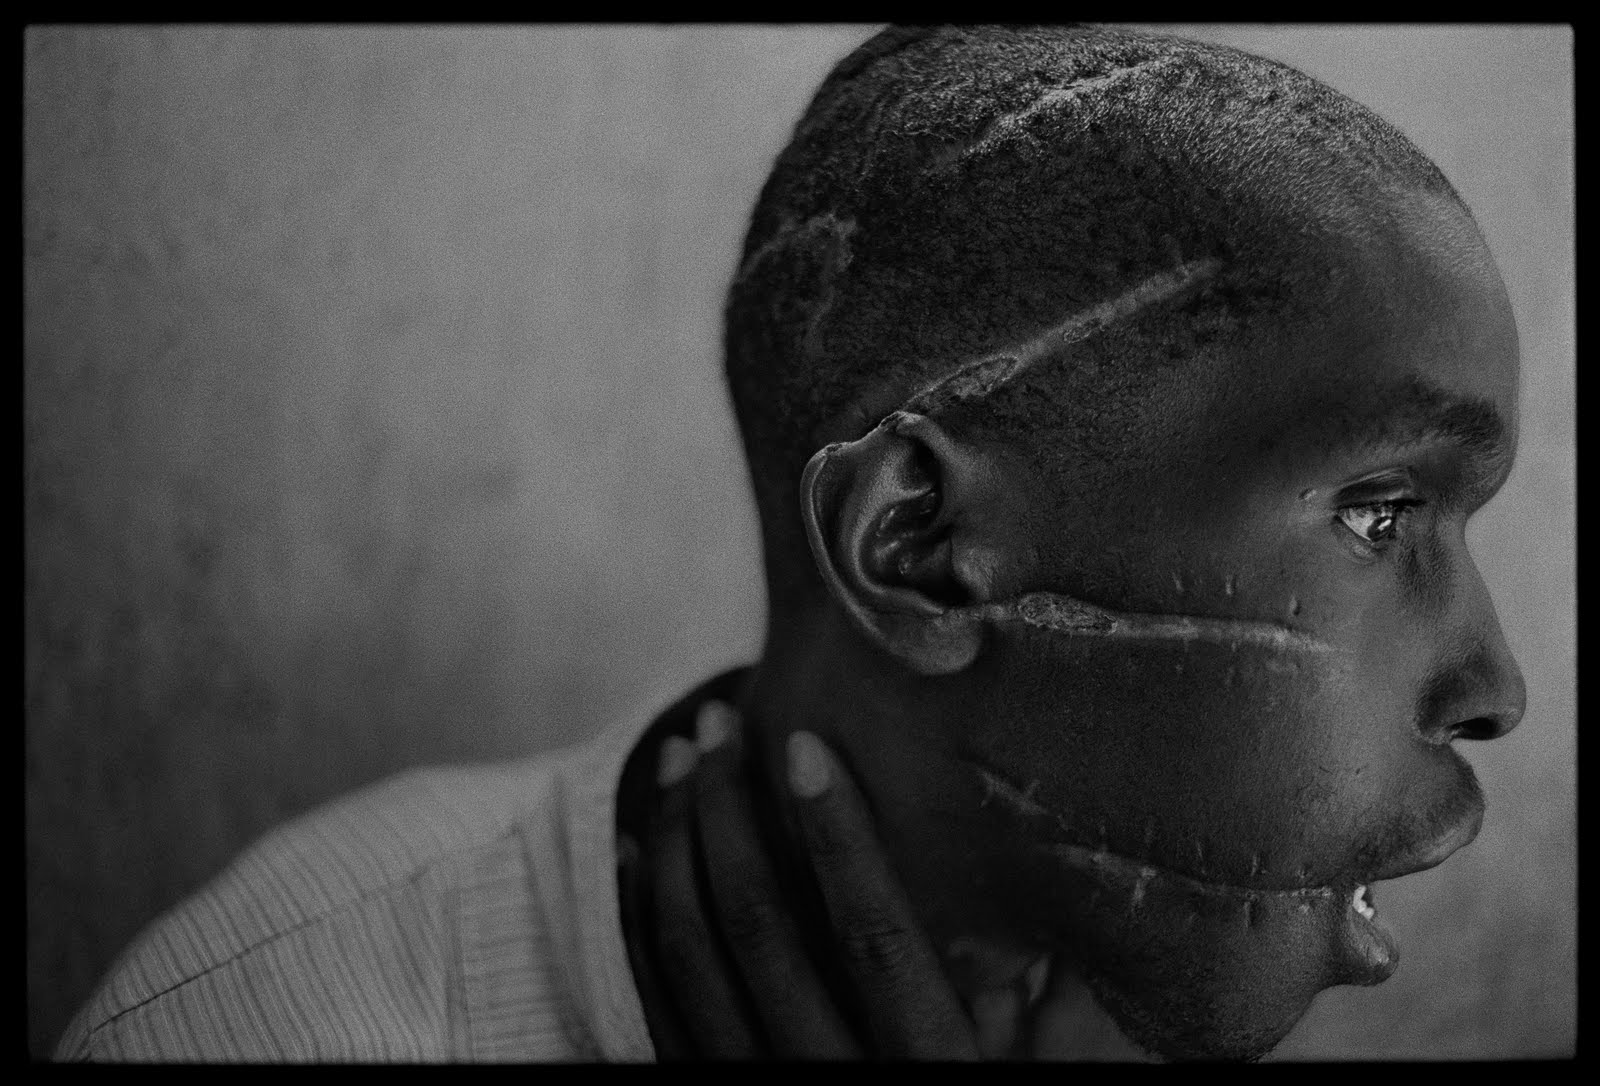 Ruanda, 1994 (Foto: James Nachtwey, 1994)